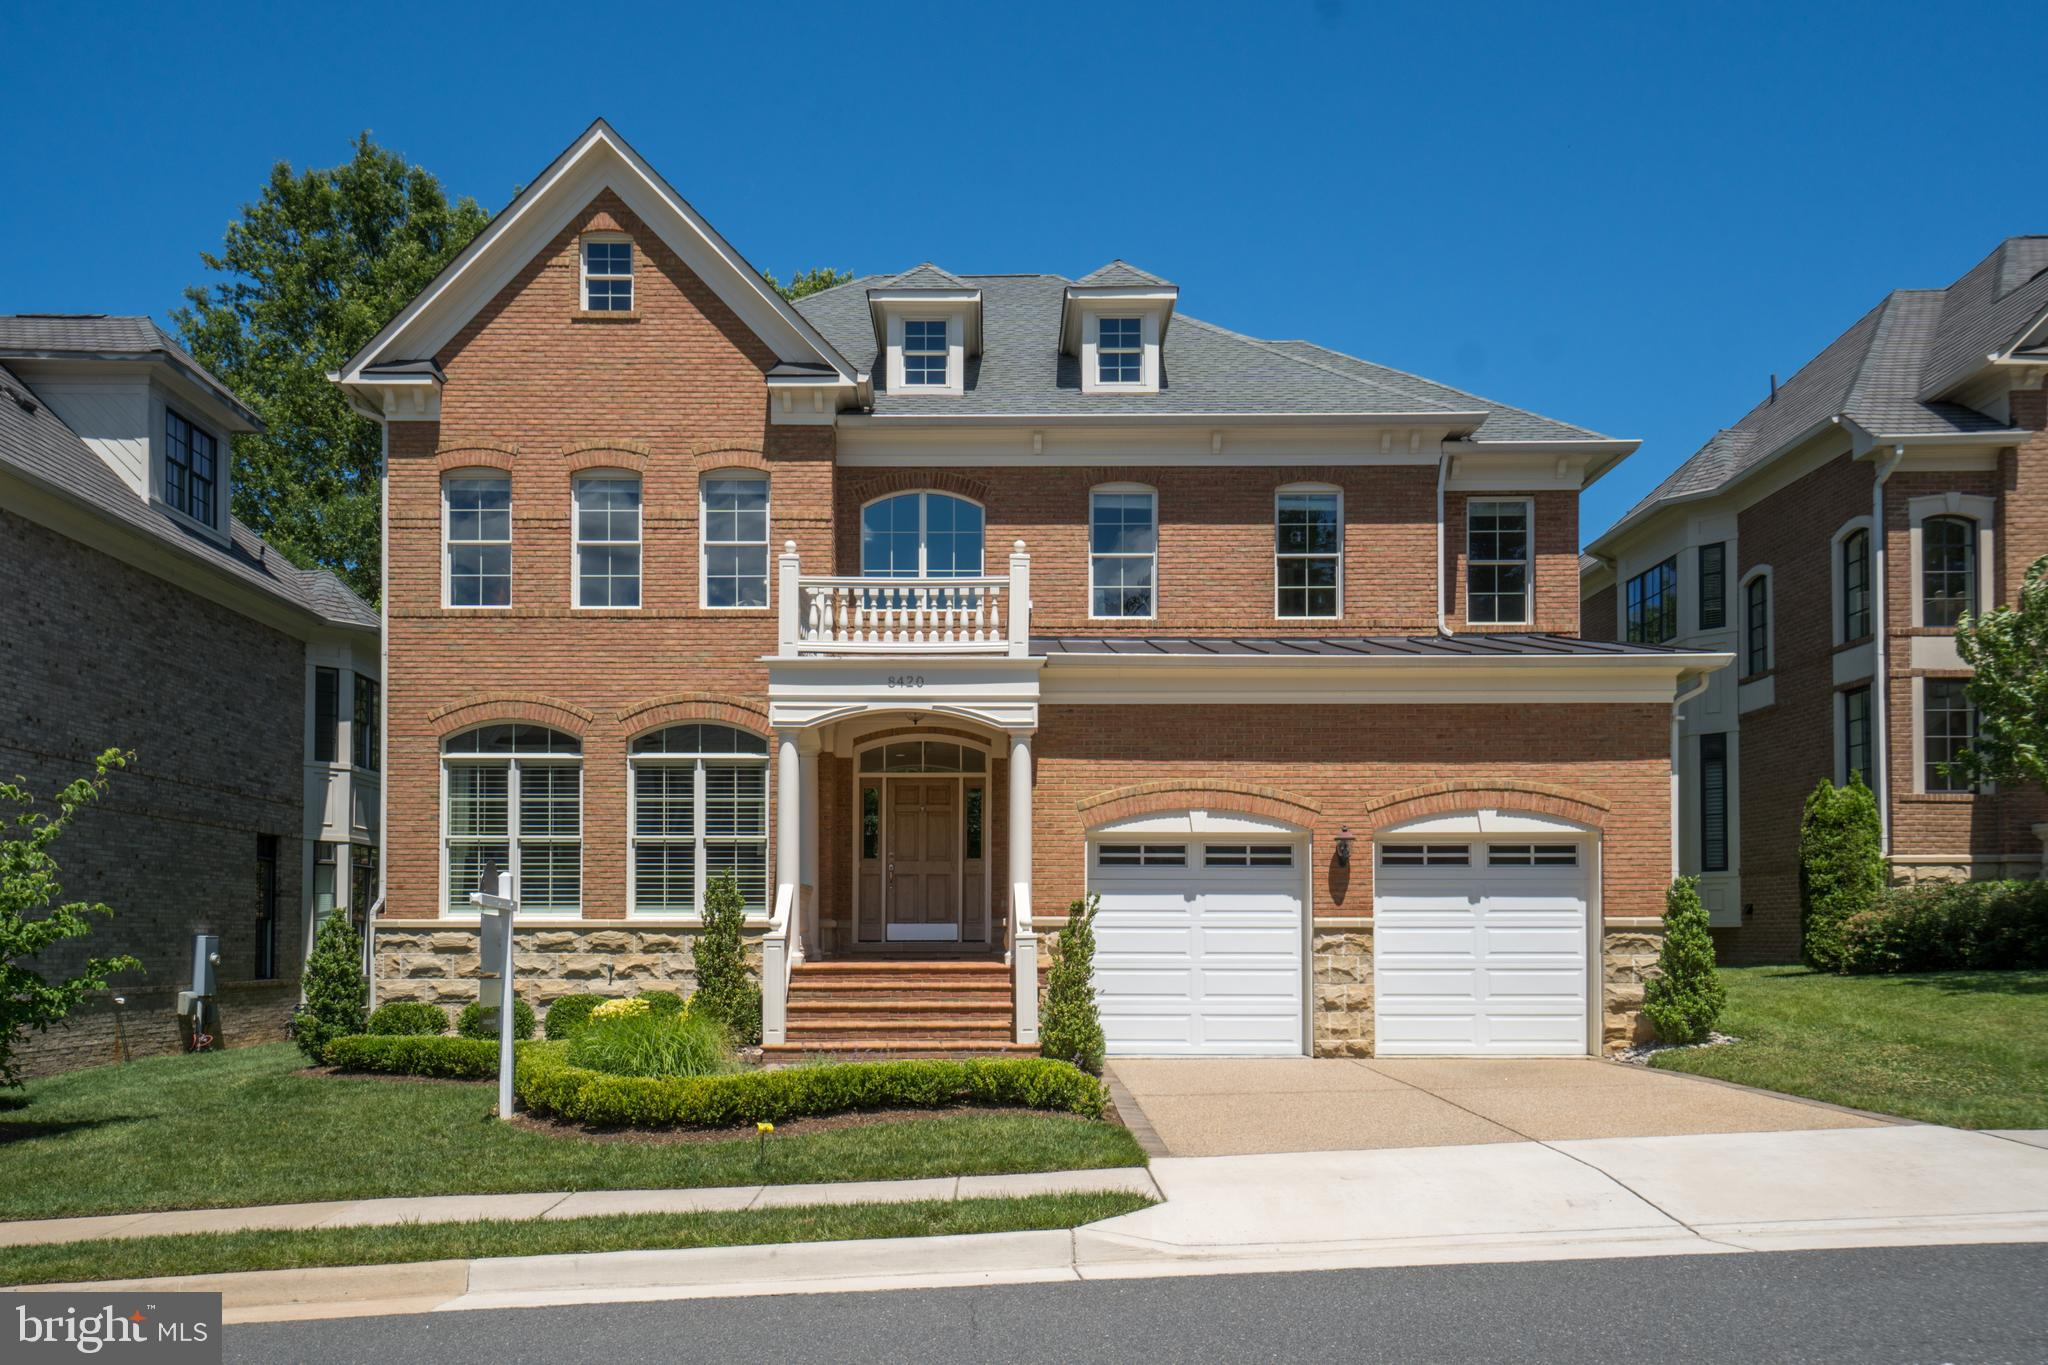 8420 FALCONE POINTE WAY, VIENNA, VA 22182